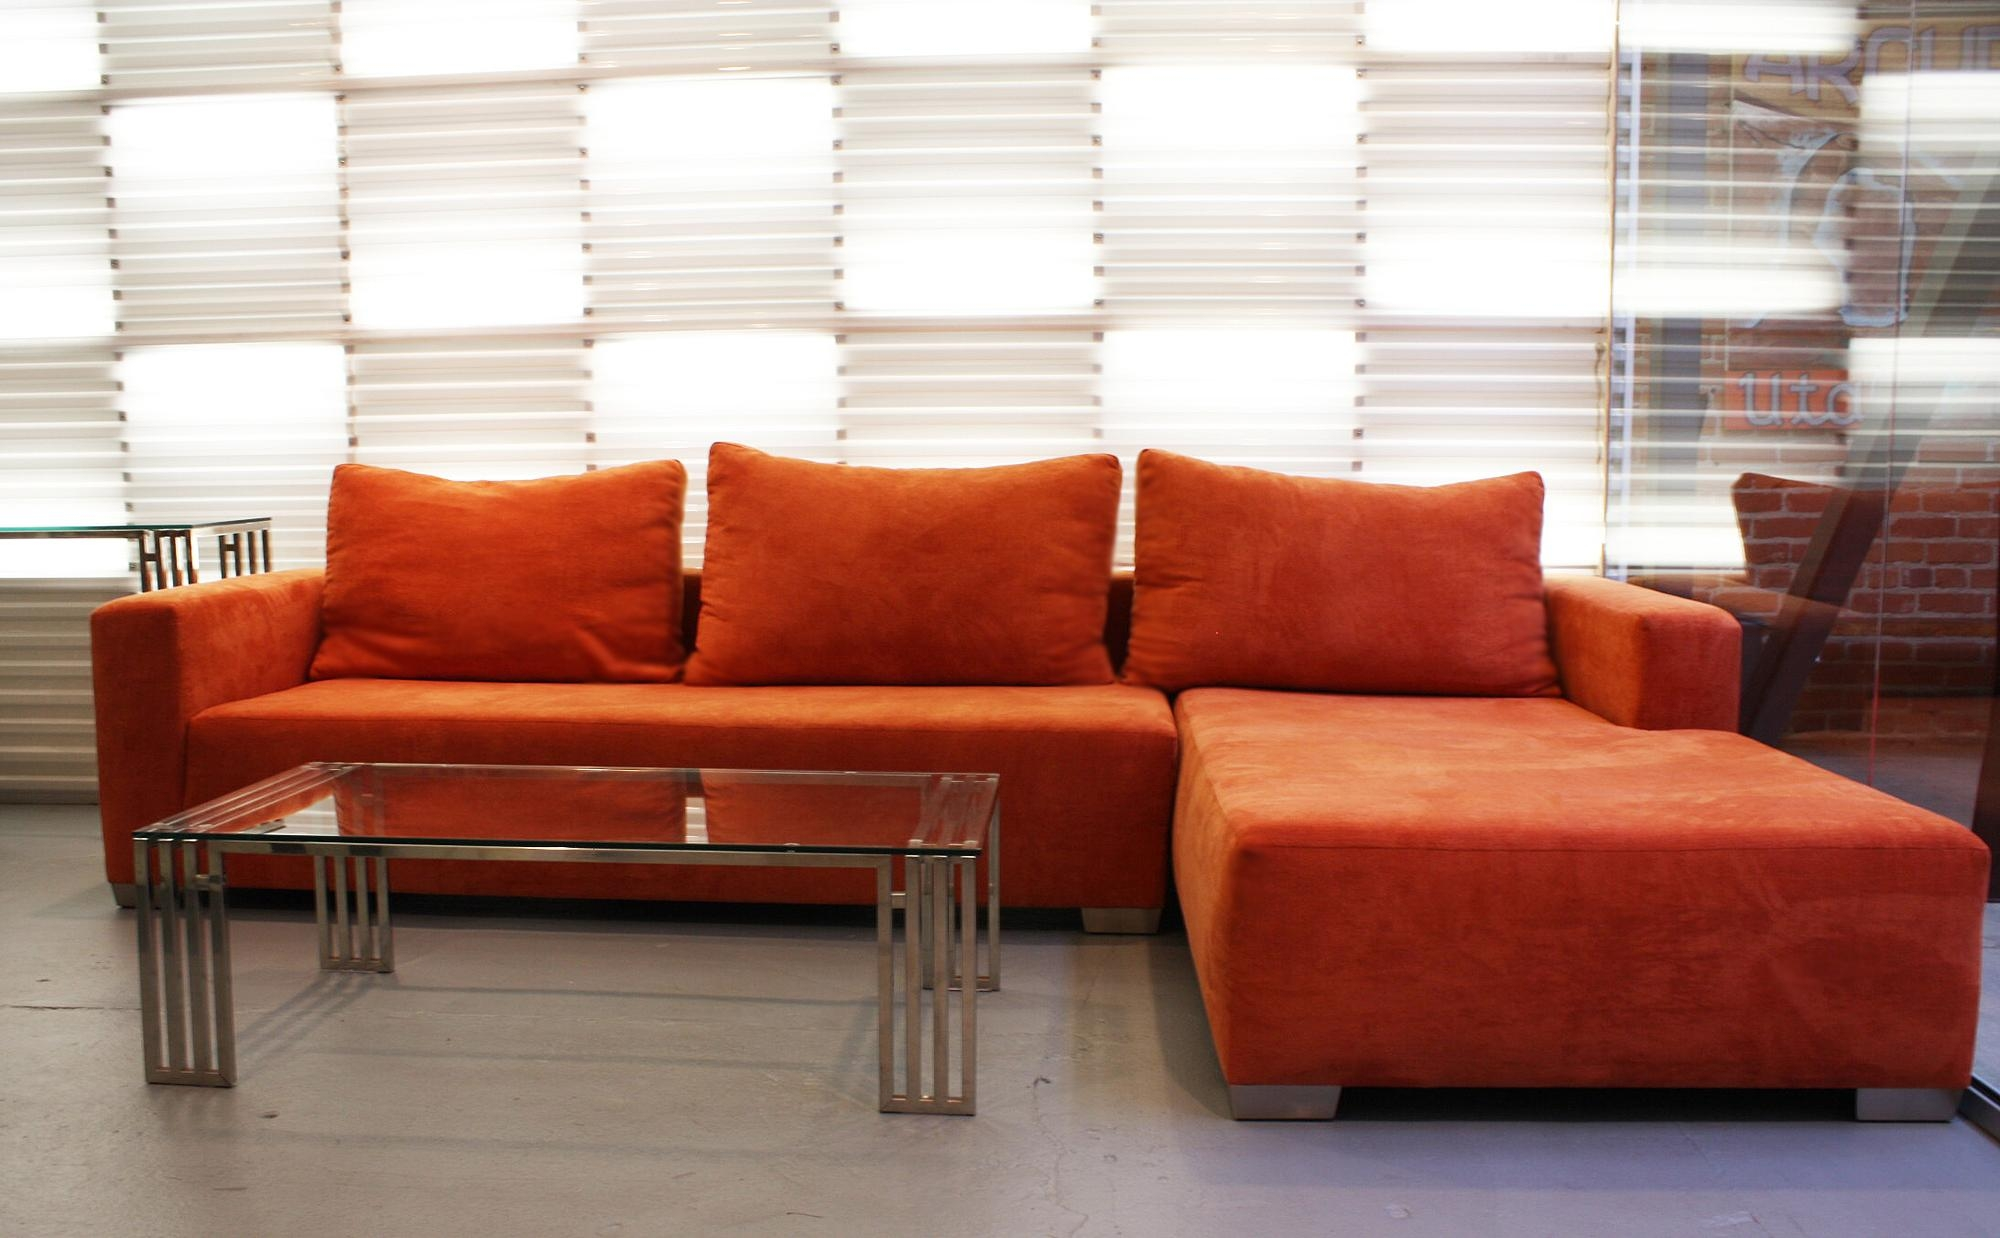 20 collection of orange sectional sofa sofa ideas for Sectional sofa orange county